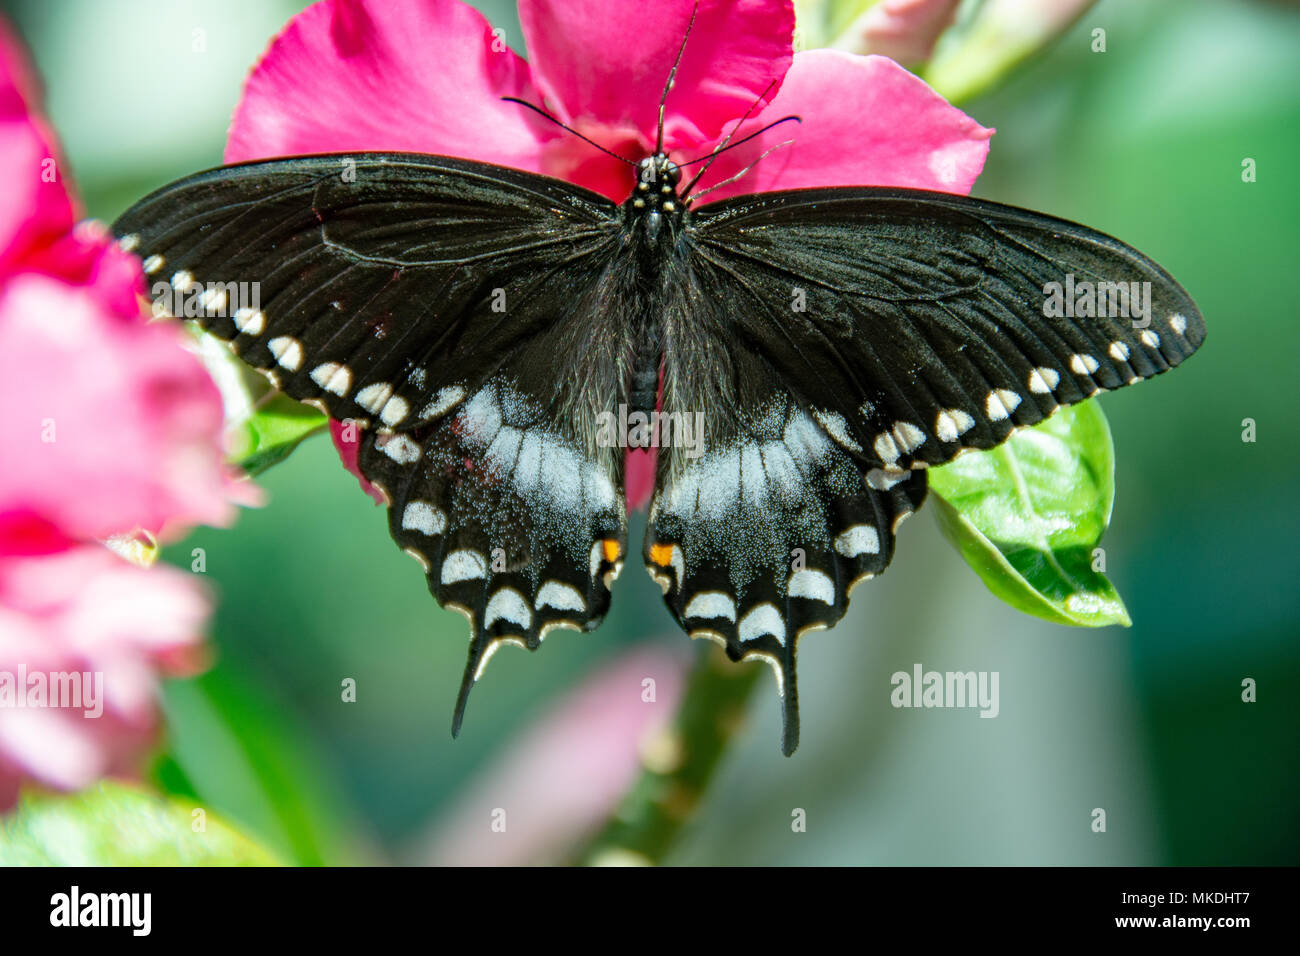 Wide Spread Wings Stock Photos & Wide Spread Wings Stock Images - Alamy